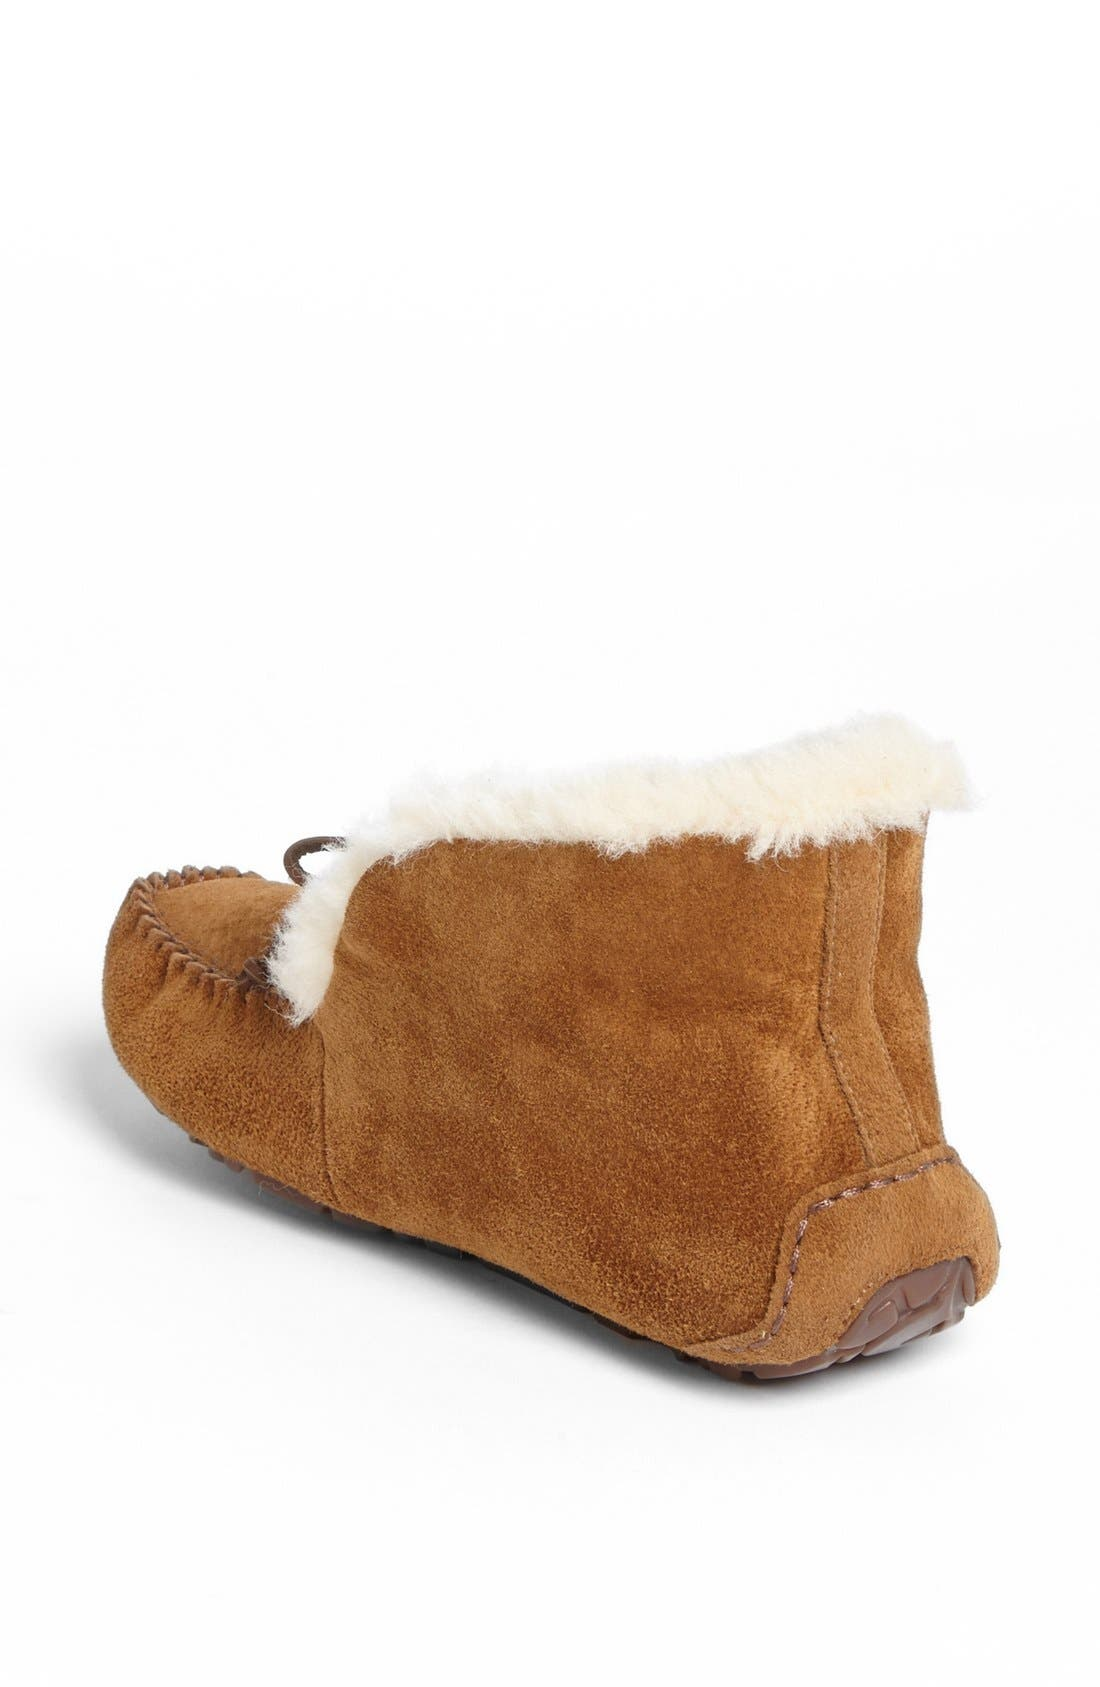 UGGpure<sup>™</sup> Alena Suede Slipper Bootie,                             Alternate thumbnail 5, color,                             CHESTNUT